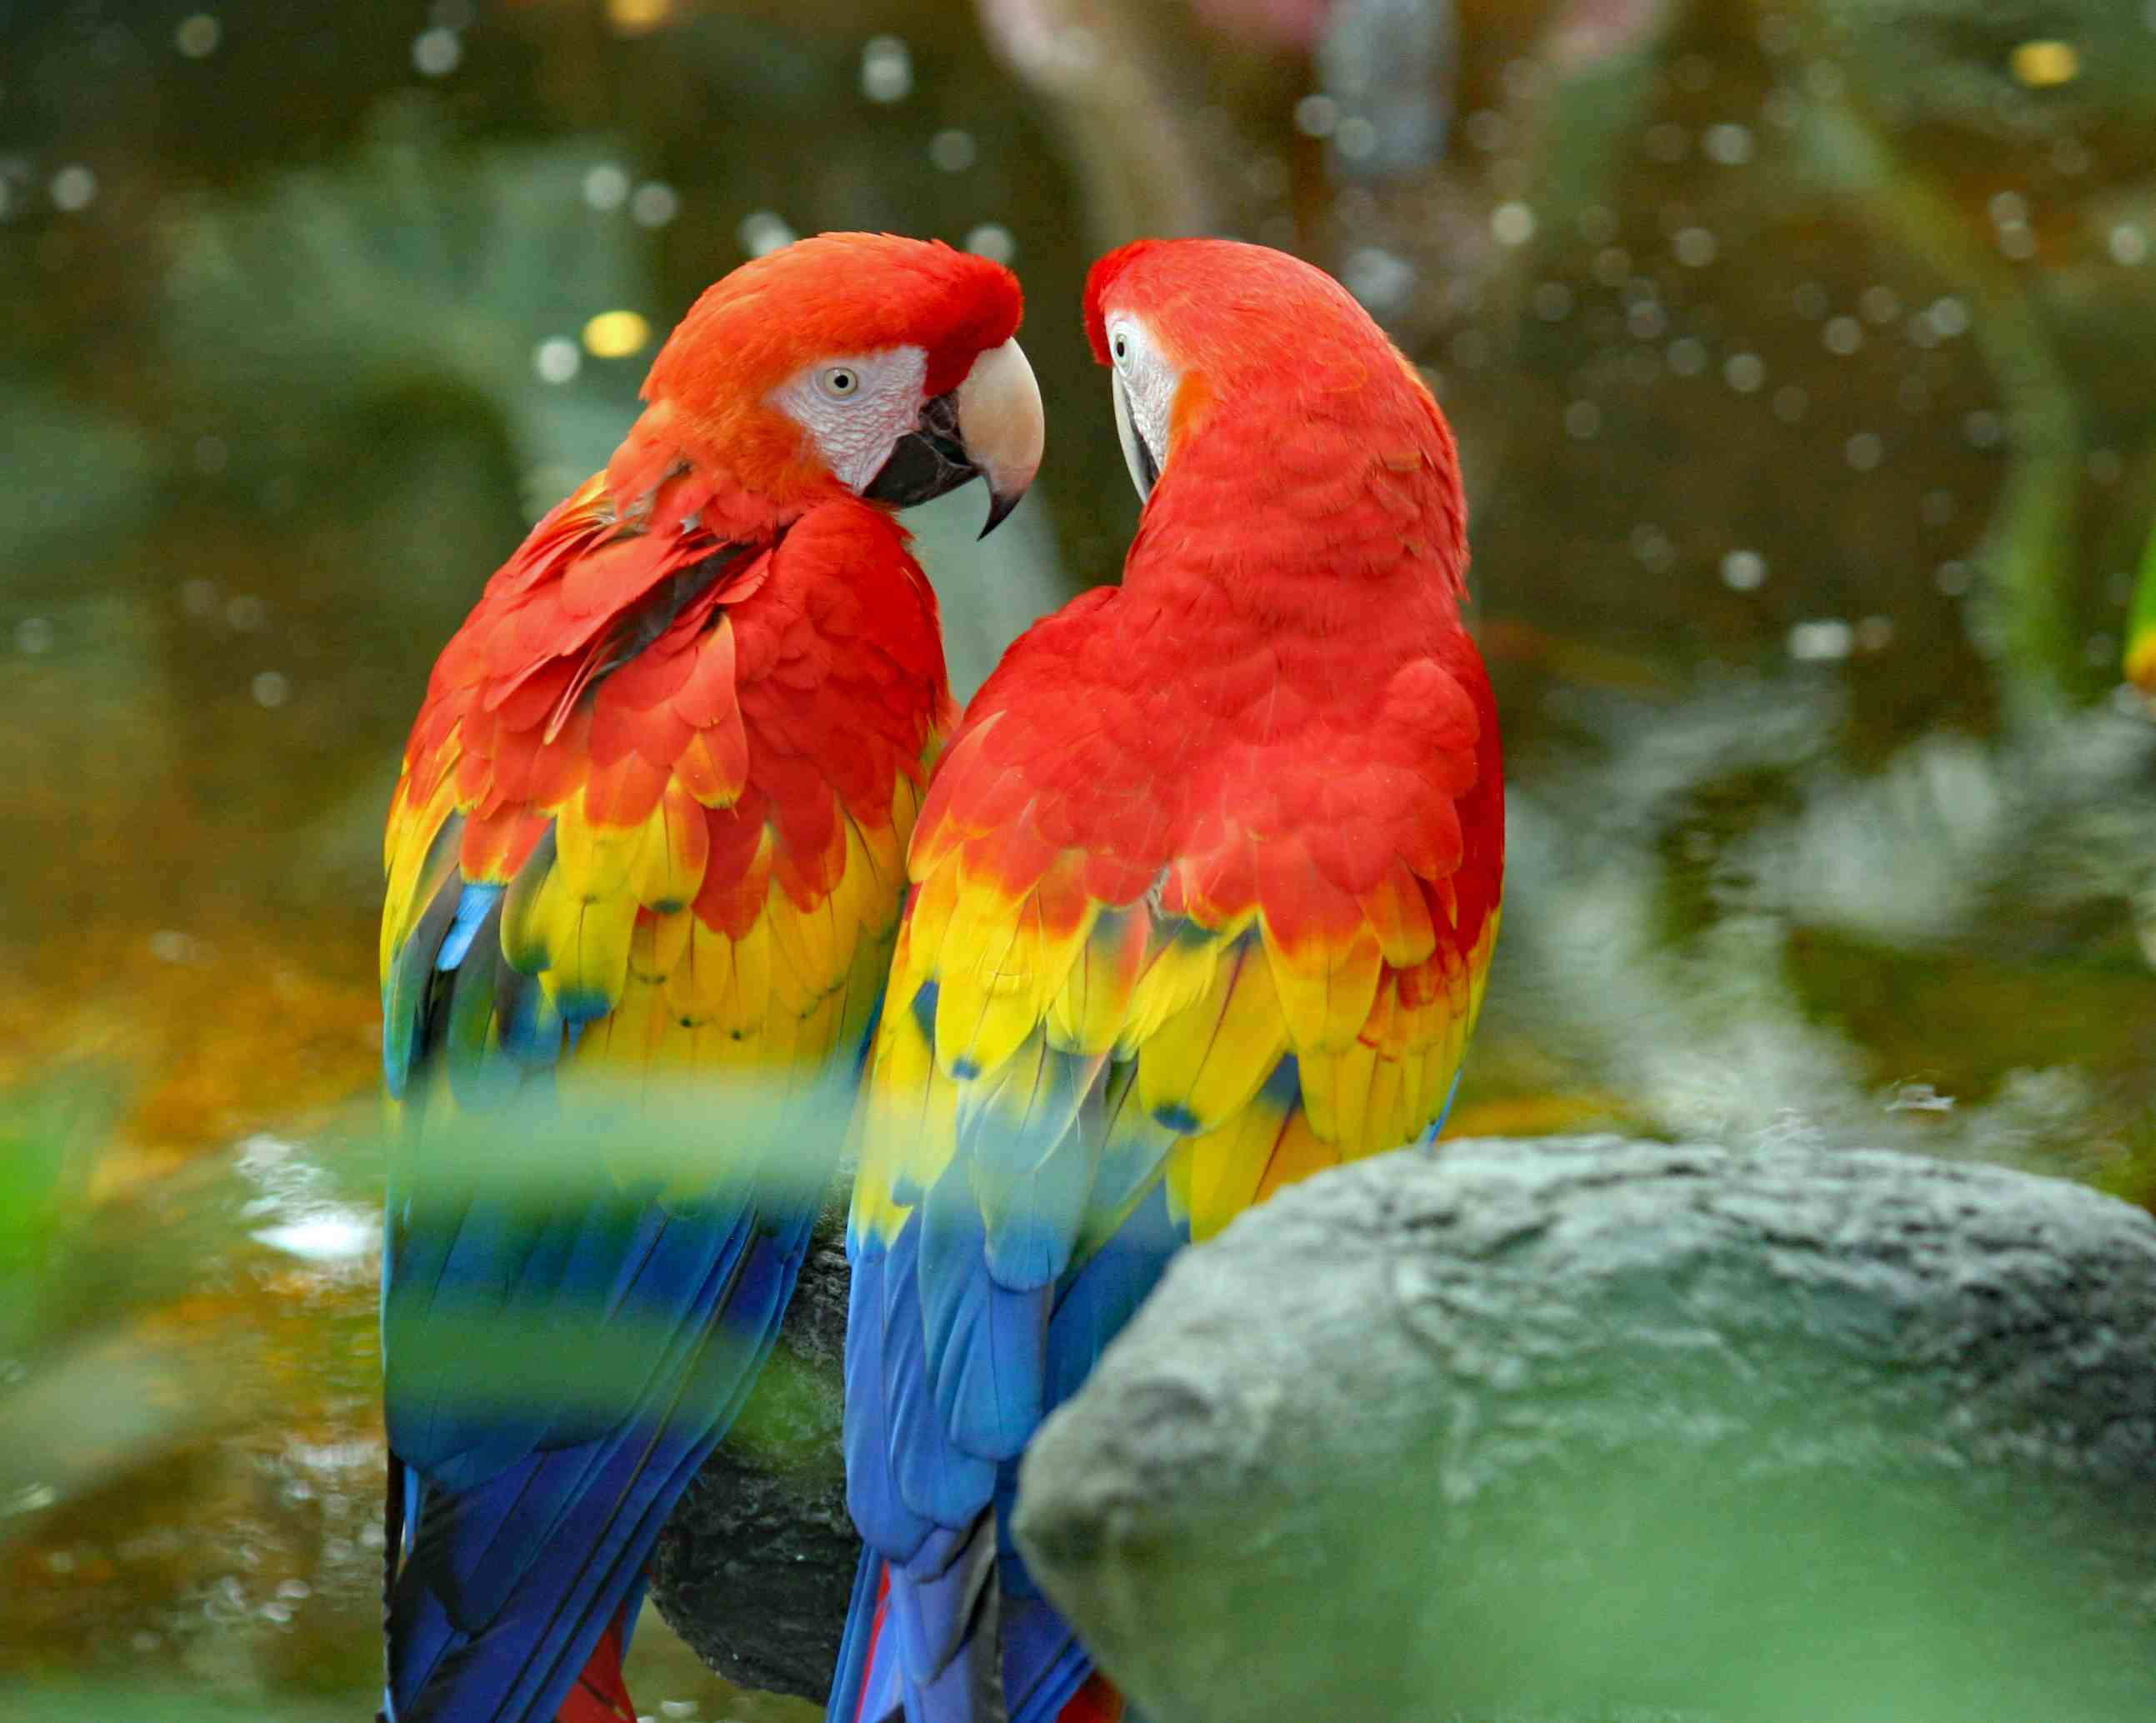 two scarlet macaws sitting together